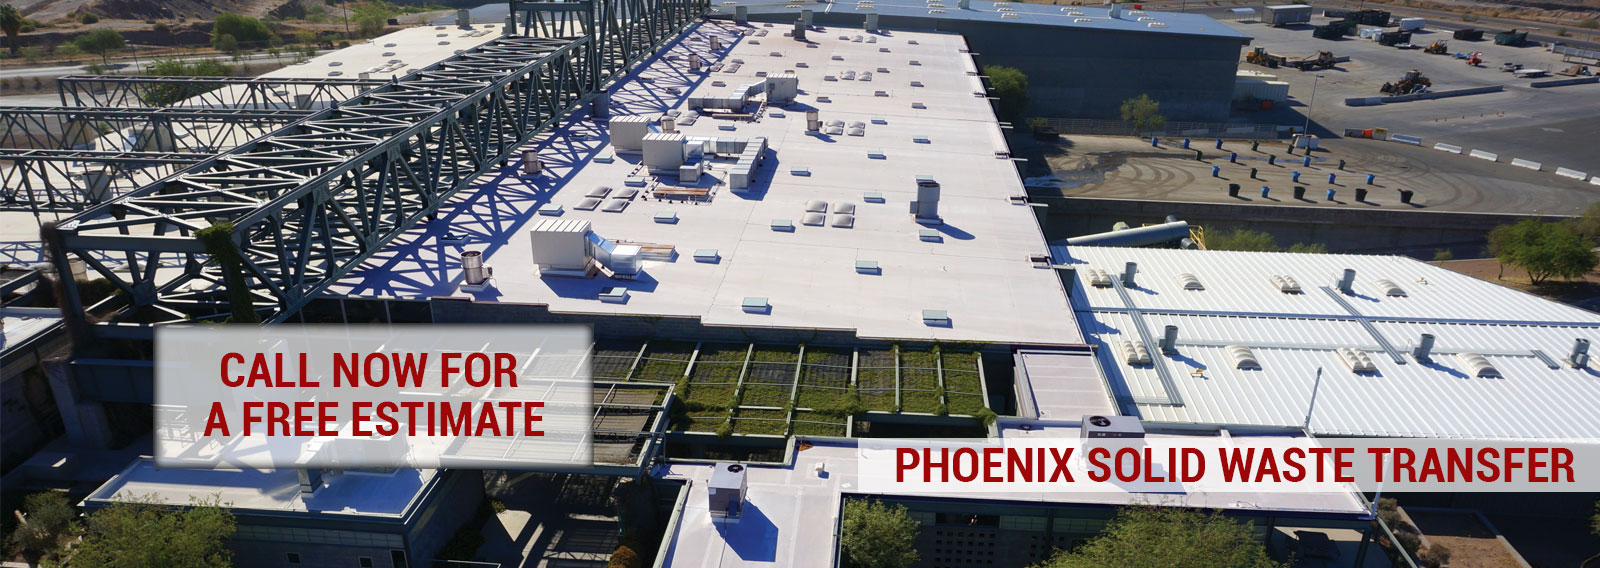 City of Phoenix Solid Waste Transfer Foam Roofed